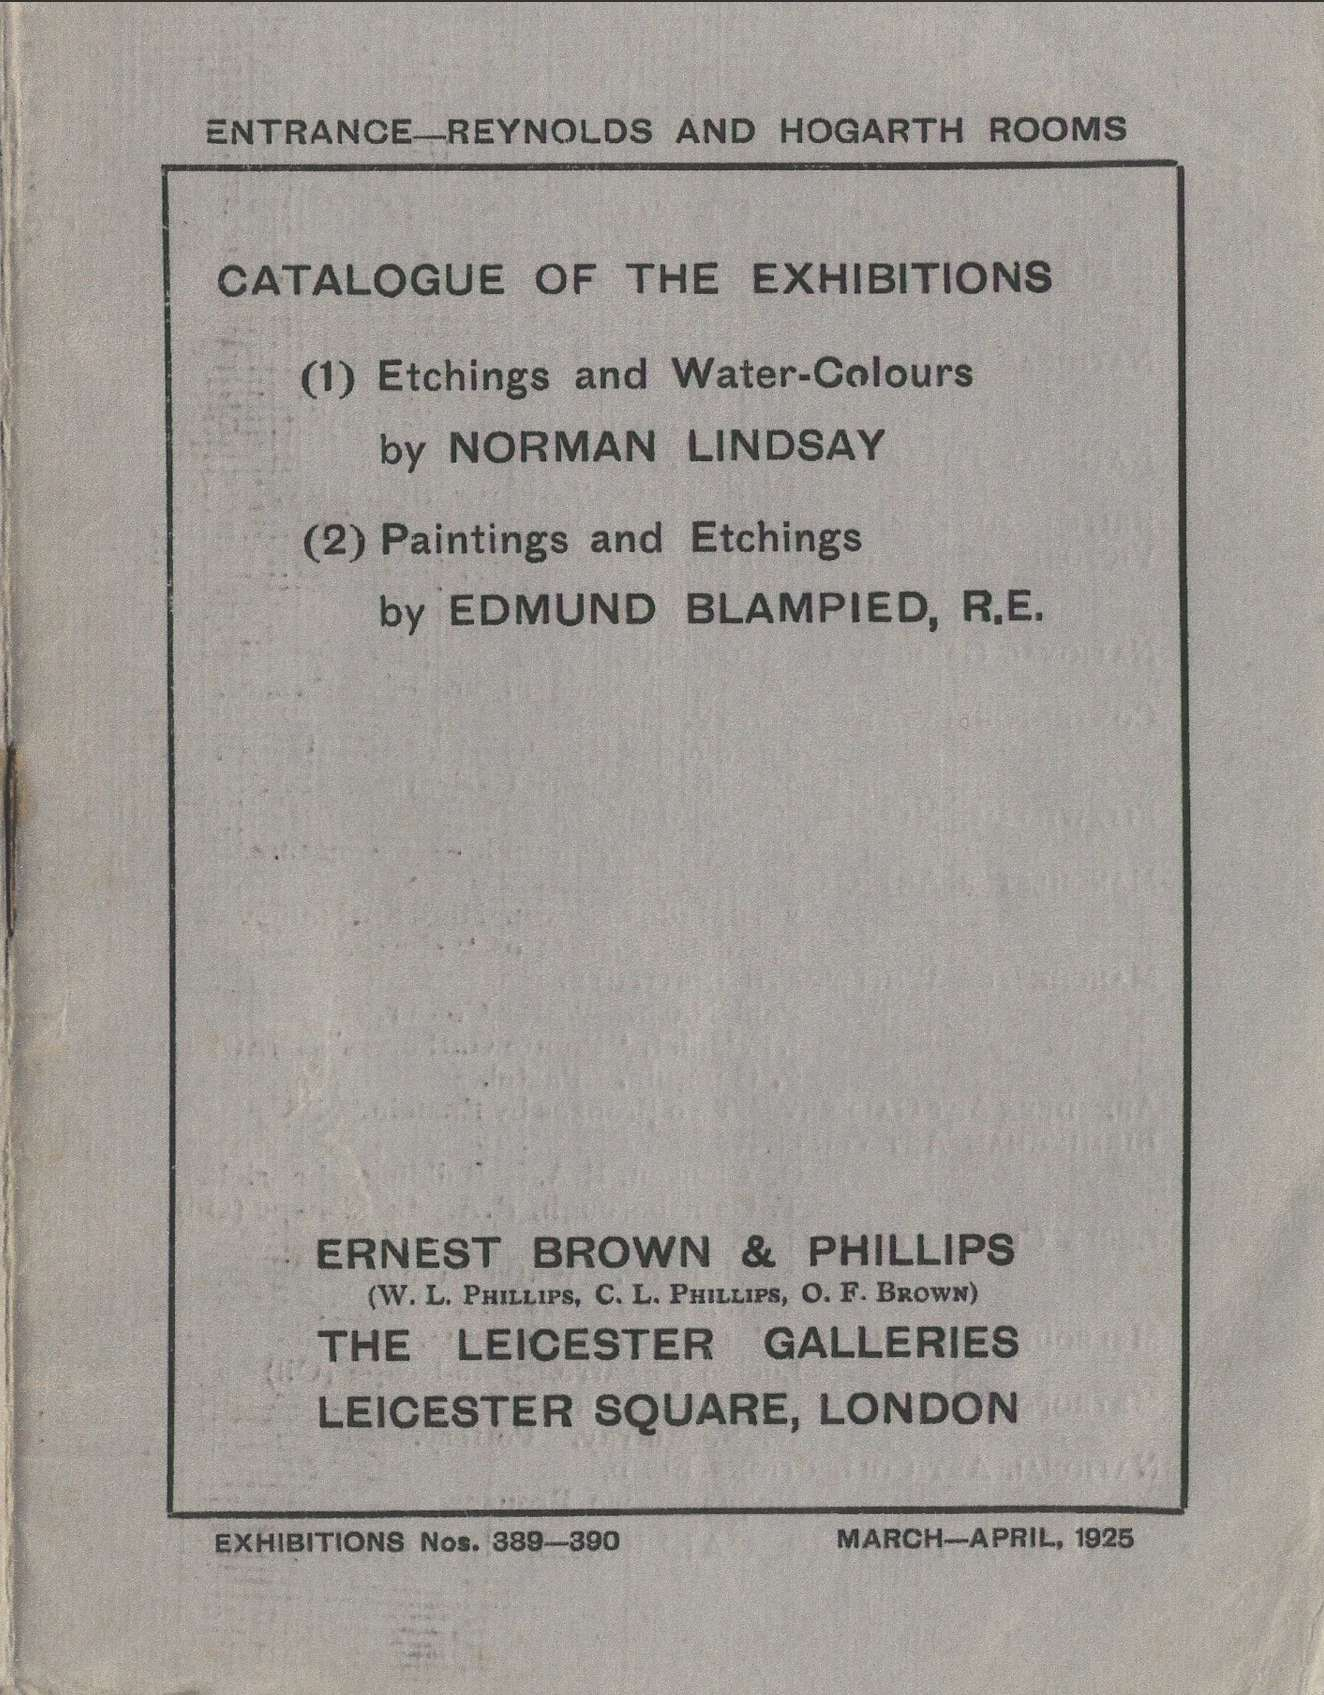 Image of cover of catalogue